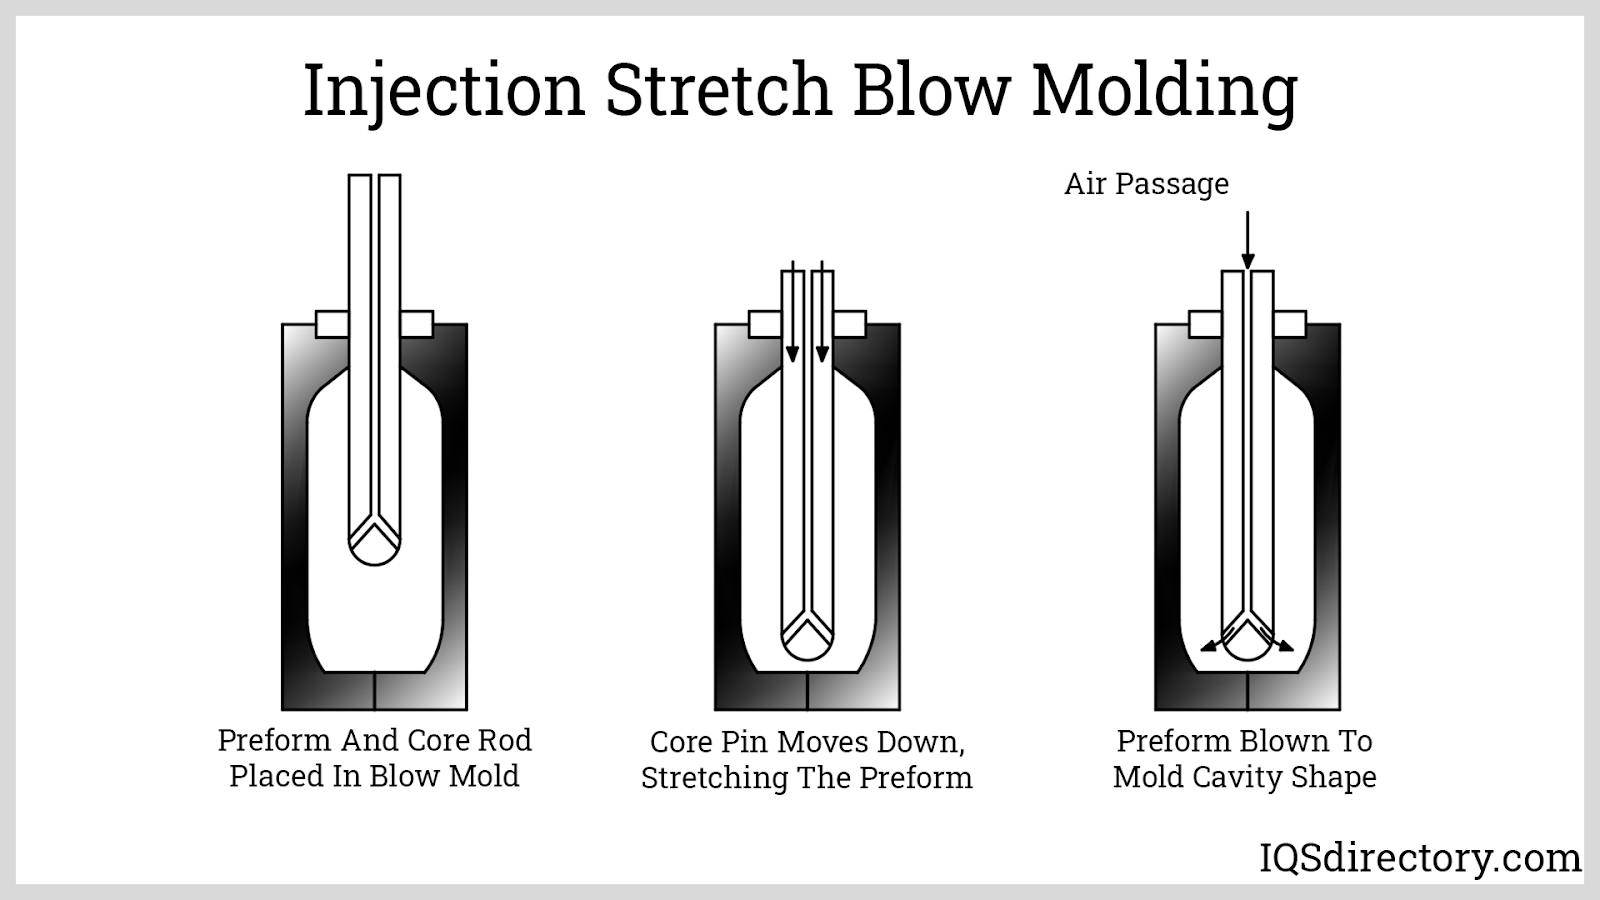 Injection Stretch Blow Molding